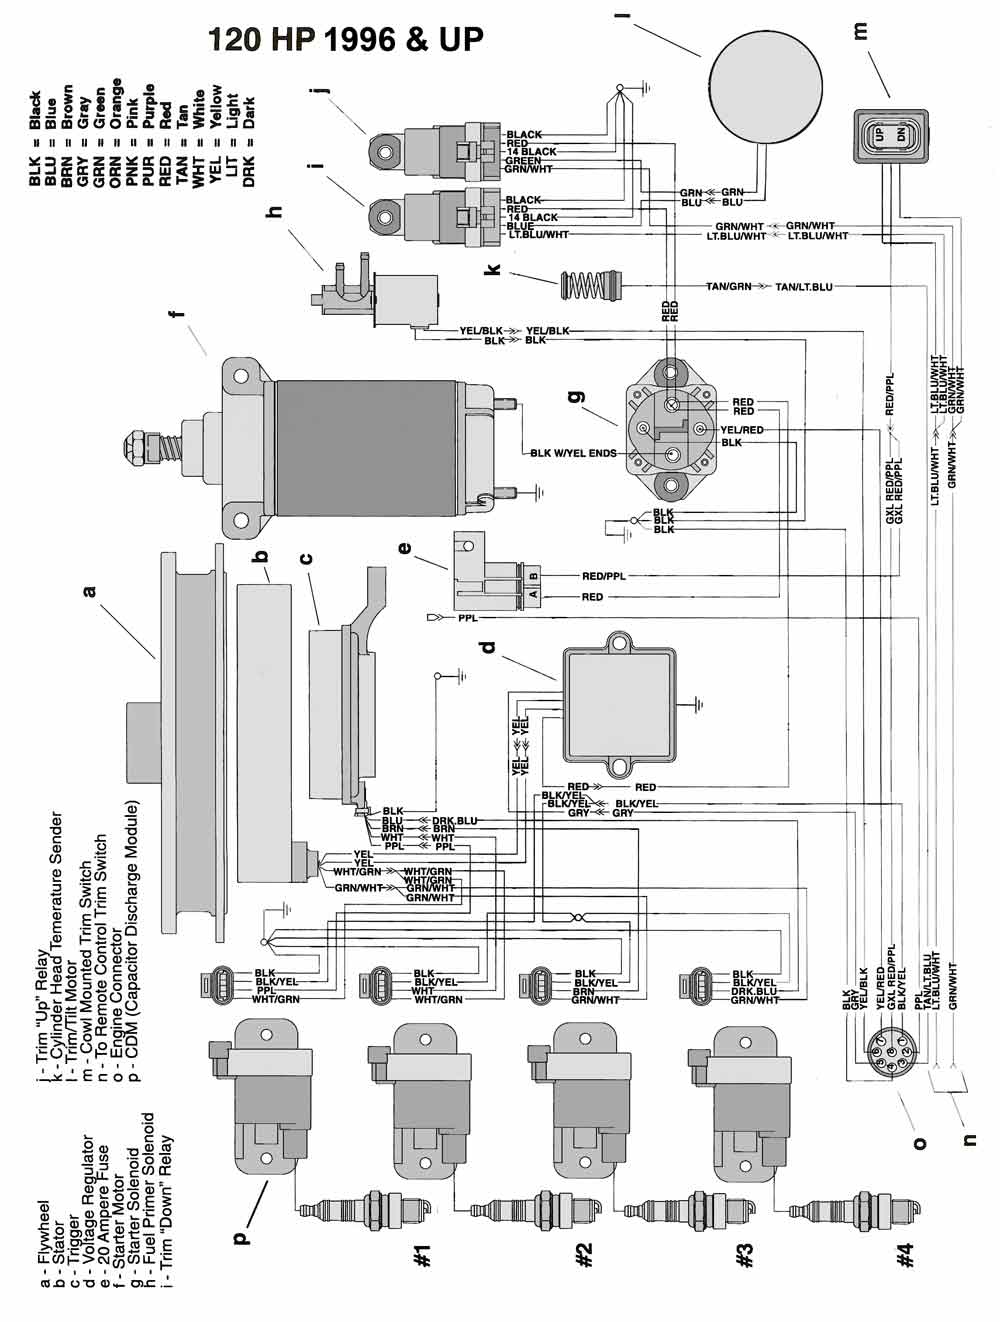 mastertech marine chrysler force outboard wiring diagrams rh maxrules com Wiring Diagram for Evinrude 115Hp Outboard Evinrude 88 SPL Wiring-Diagram